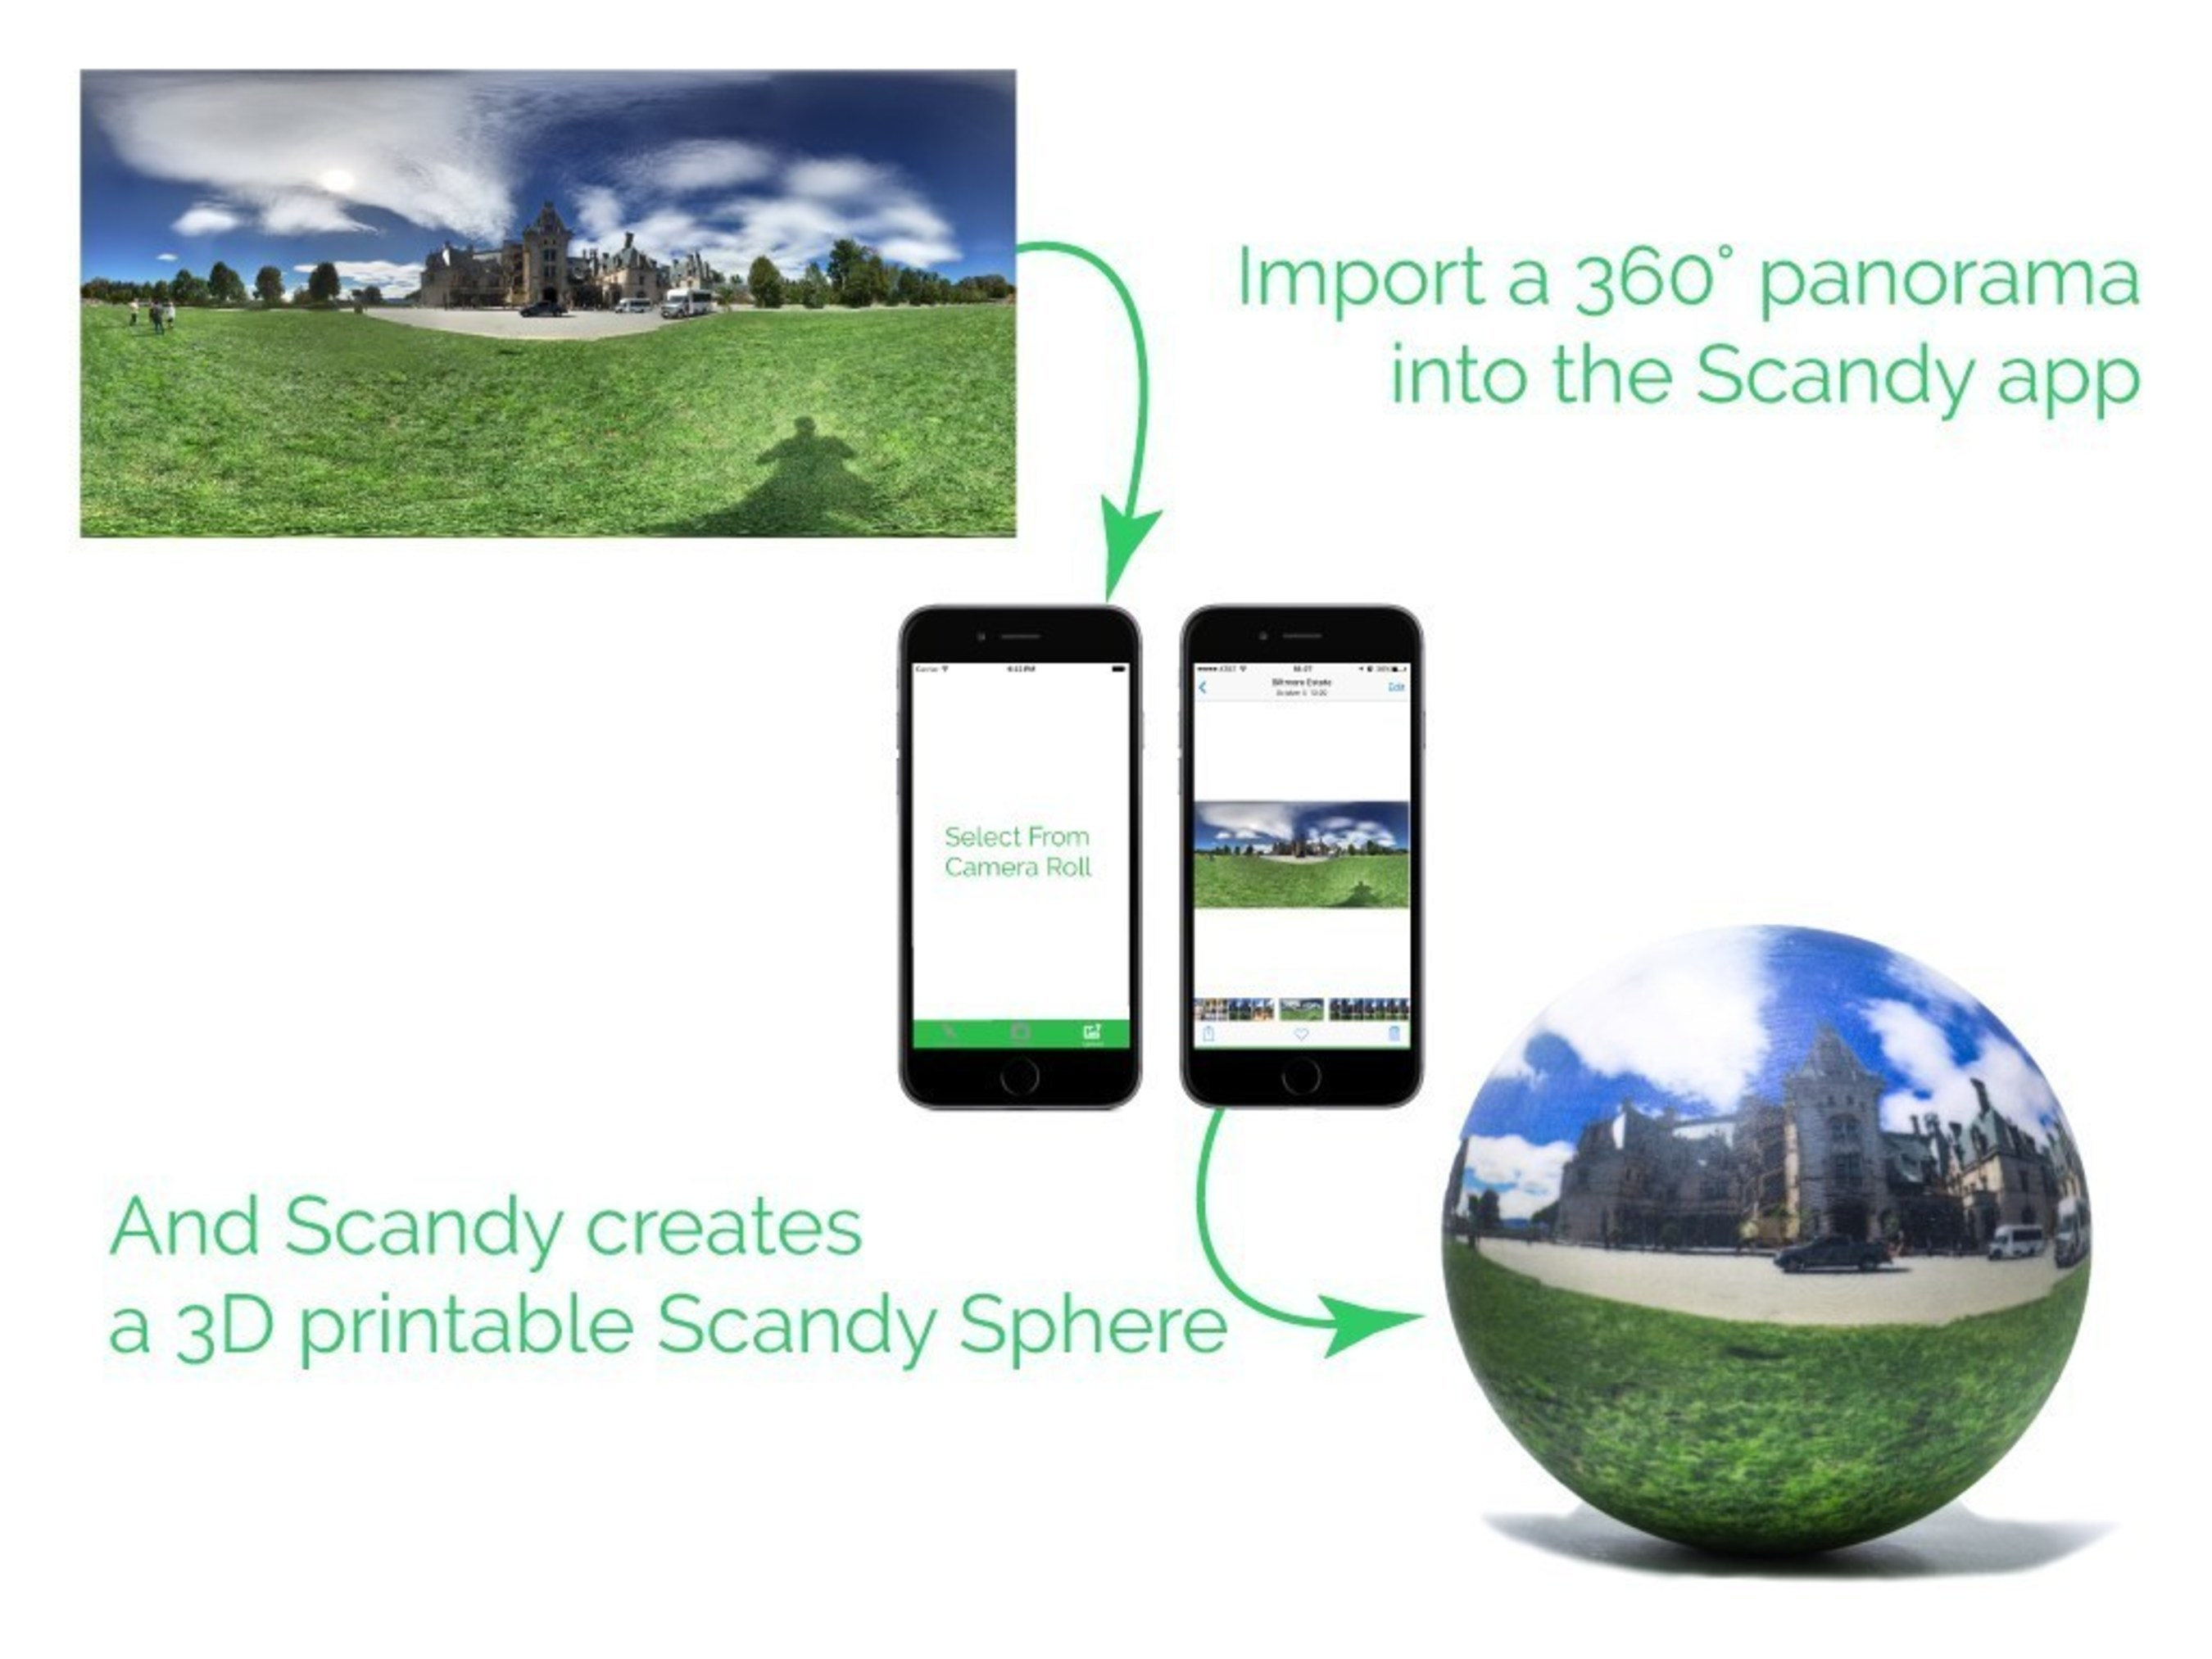 Scandy turns panoramas into 3D printed Scandy Spheres. Either import existing panoramas or capture 360°panoramas with the Scandy app. Investors are excited and Scandy closes $1M in funding.